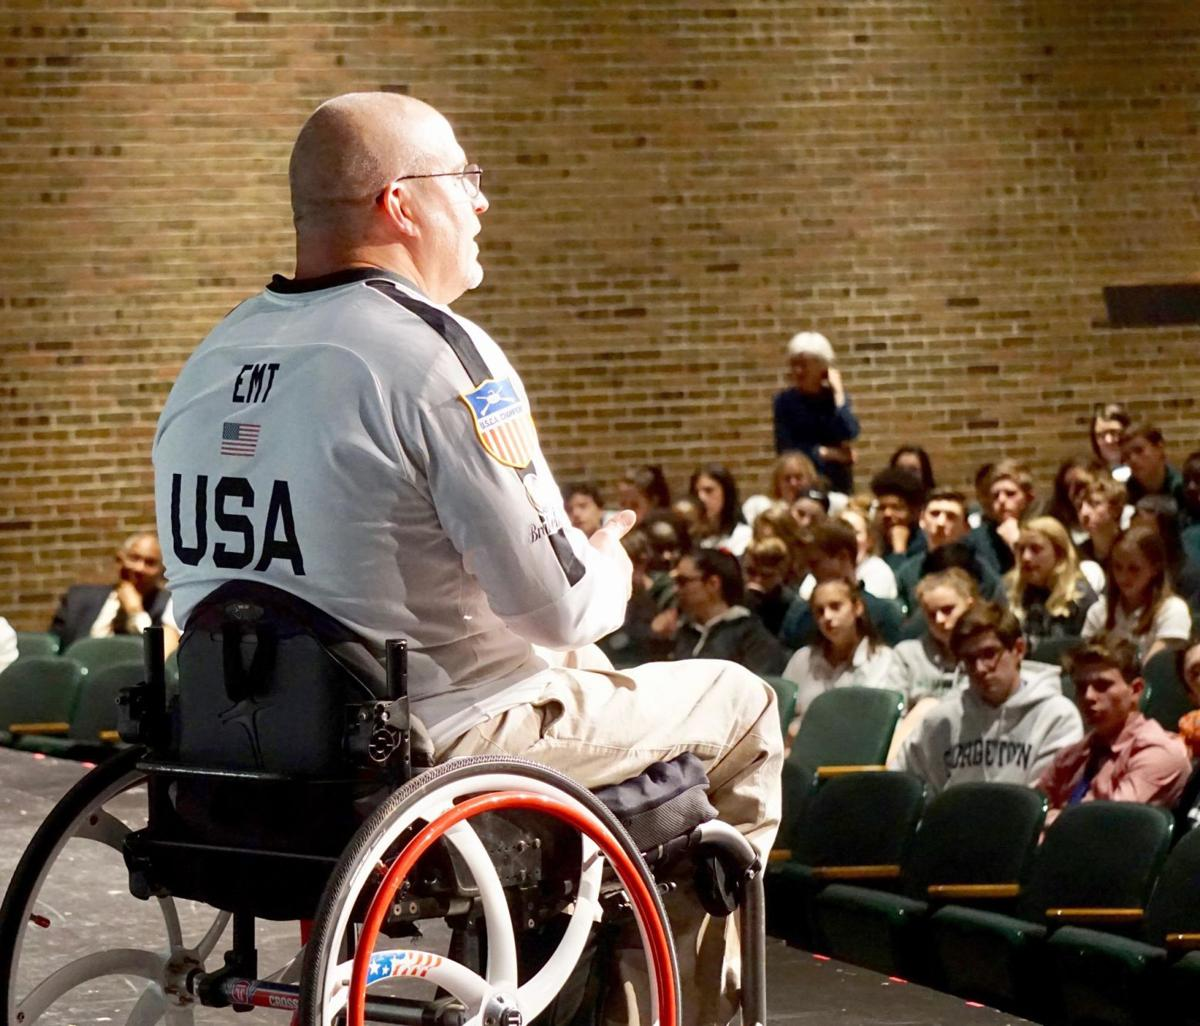 'Make good choices' is message from paralympian for Northwest Catholic students